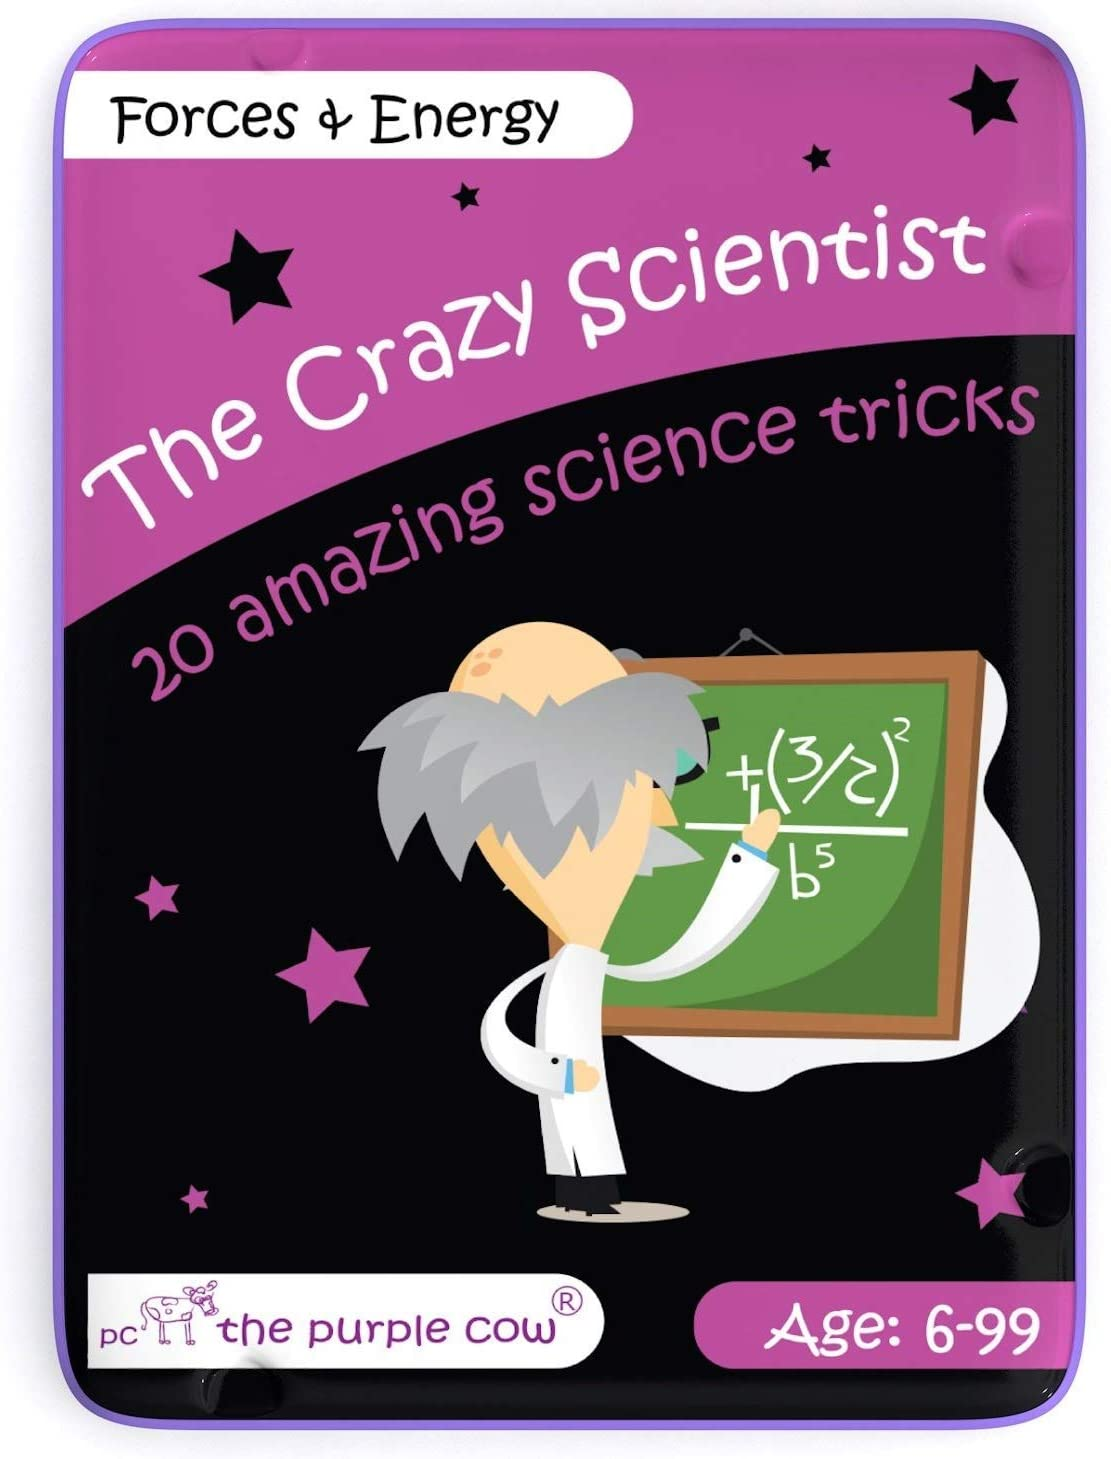 The Purple Cow- The Crazy Scientist Science Tricks Card Set, Forces and Energy, Science experiment kit for kids both boys and girls 6 years and older, instructions inside – amazing STEM learning